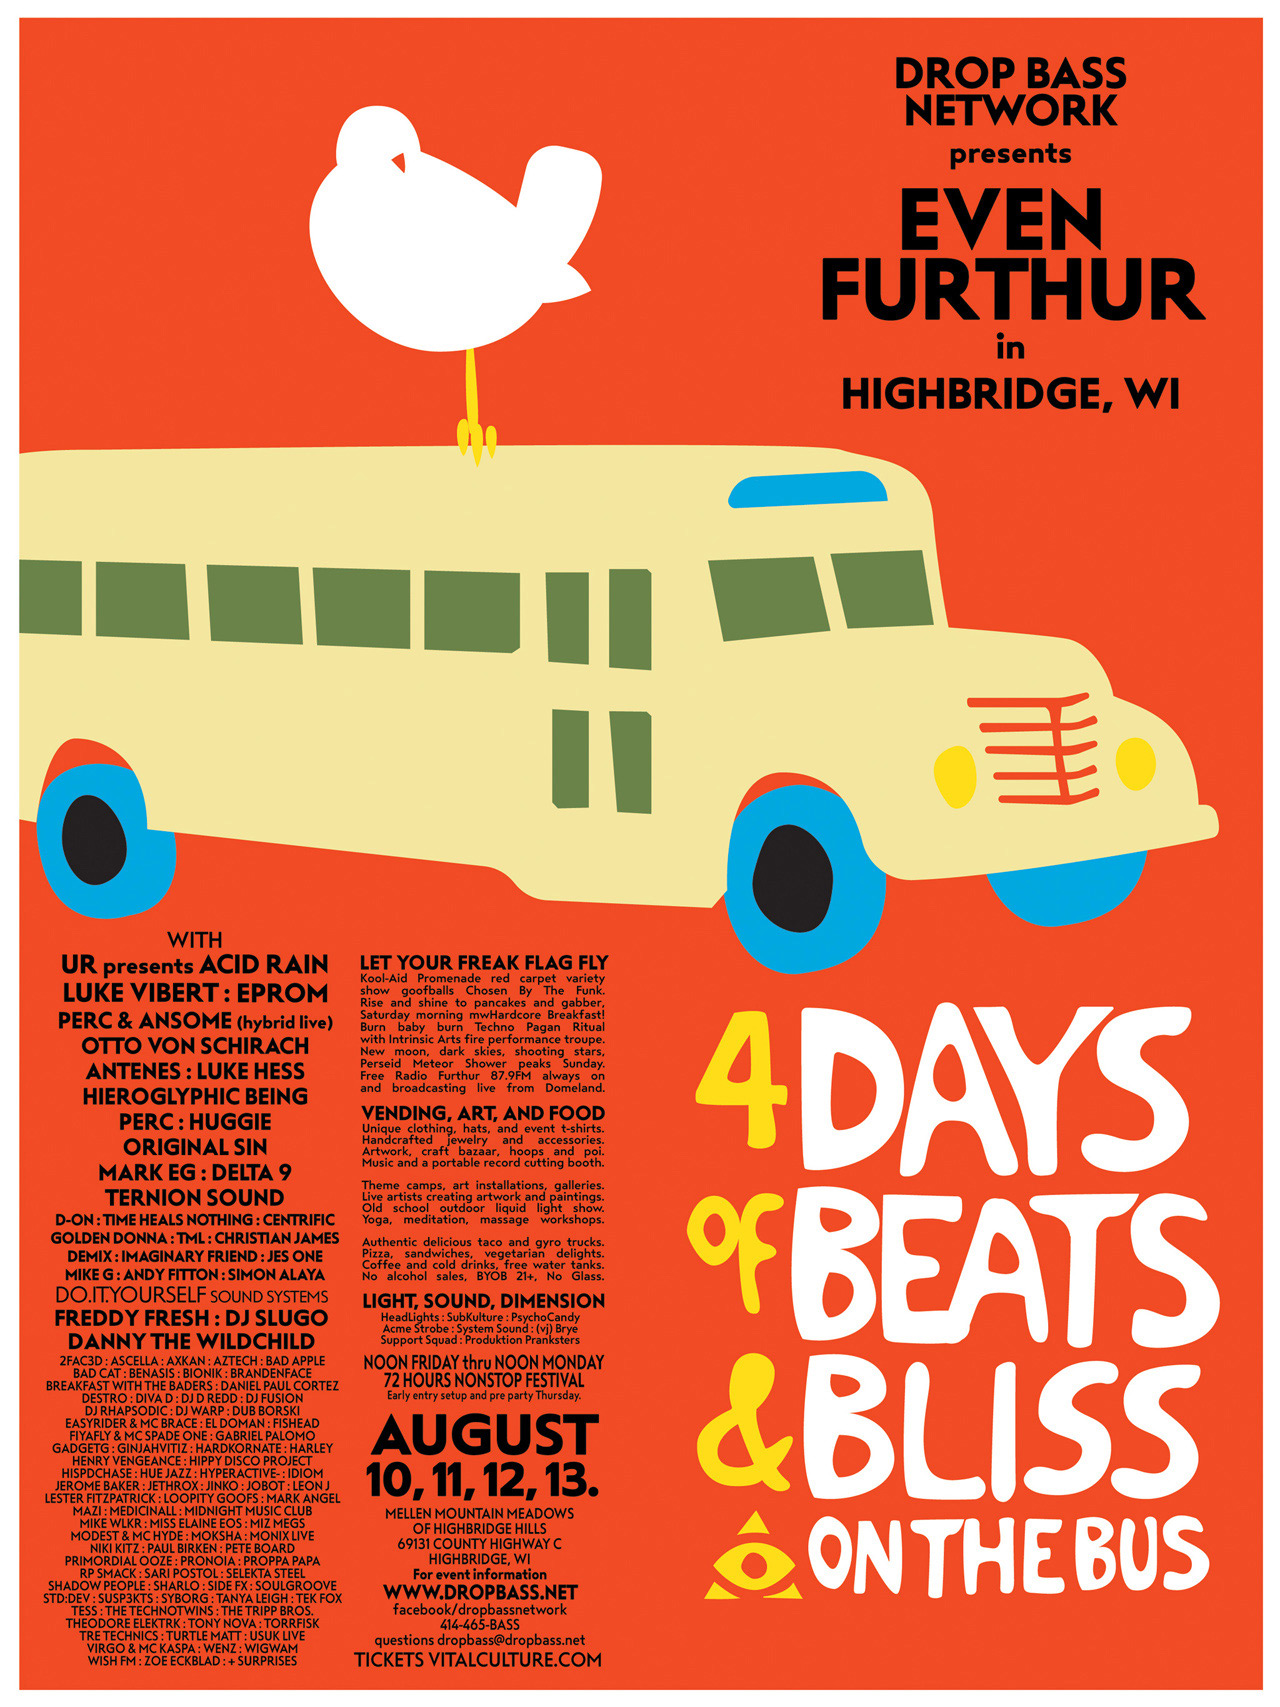 Even Furthur 2018 event announcement flyer front